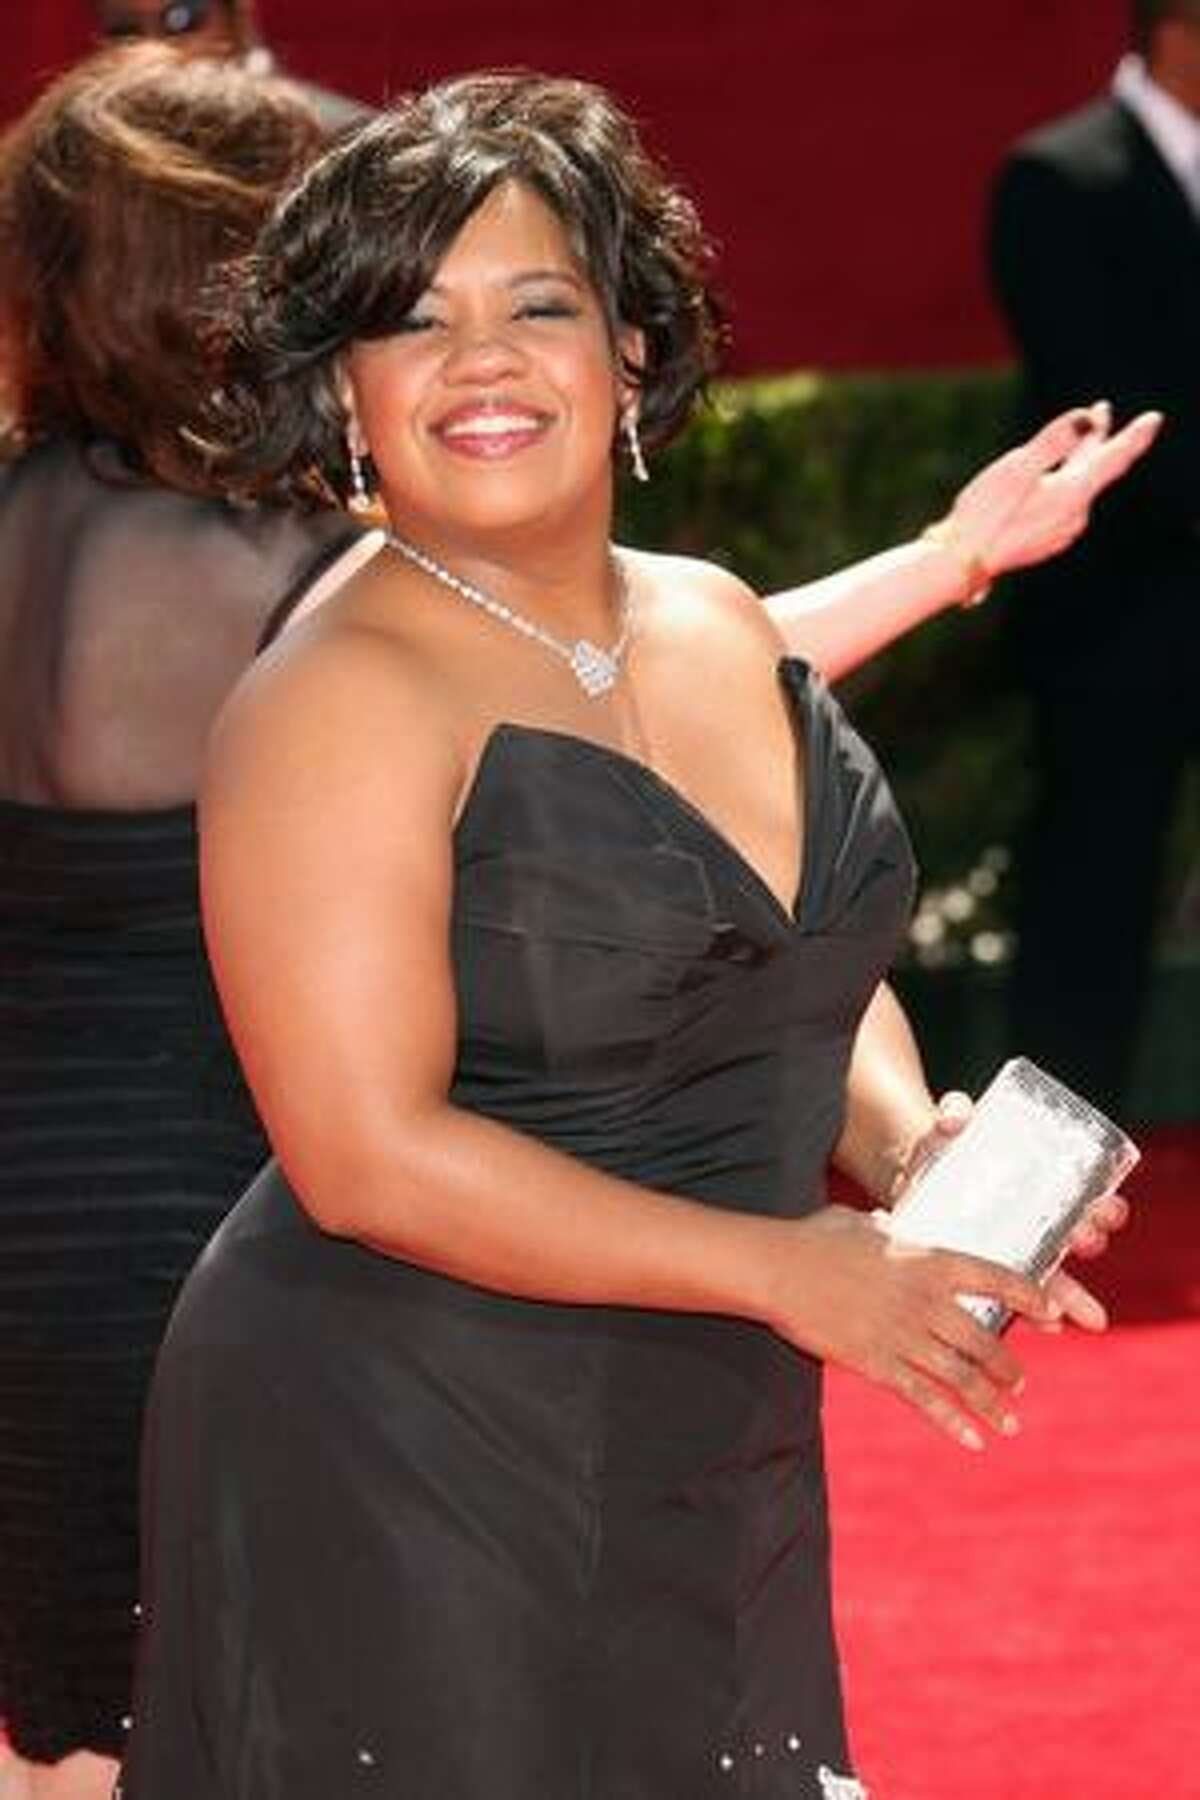 Actress Chandra Wilson arrives at the 61st Primetime Emmy Awards held at the Nokia Theatre on Sunday in Los Angeles, California.